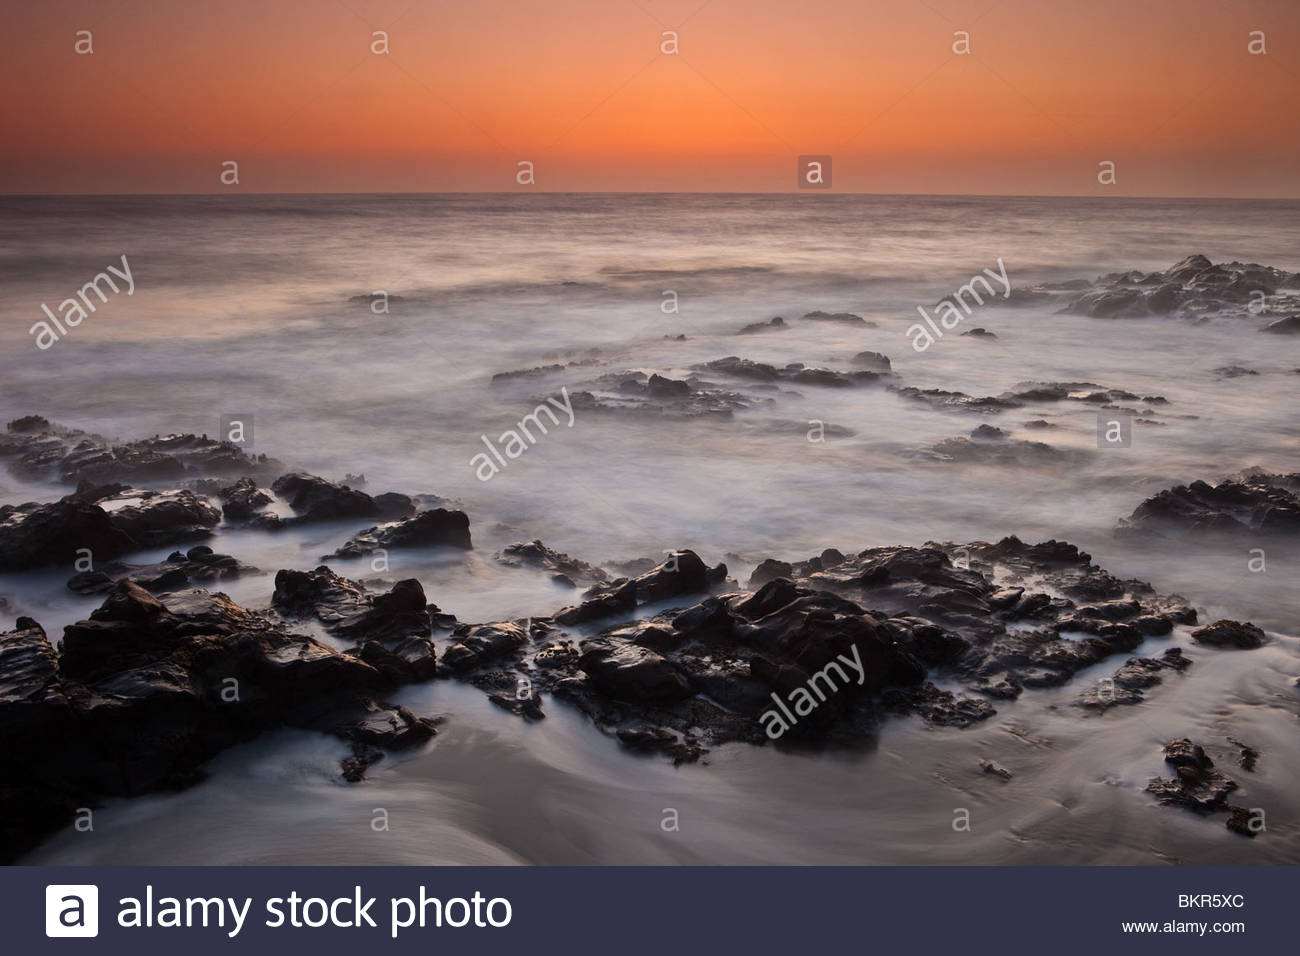 Colorful skies and twilight surf north of Santa Cruz on the Californian coast. - Stock Image